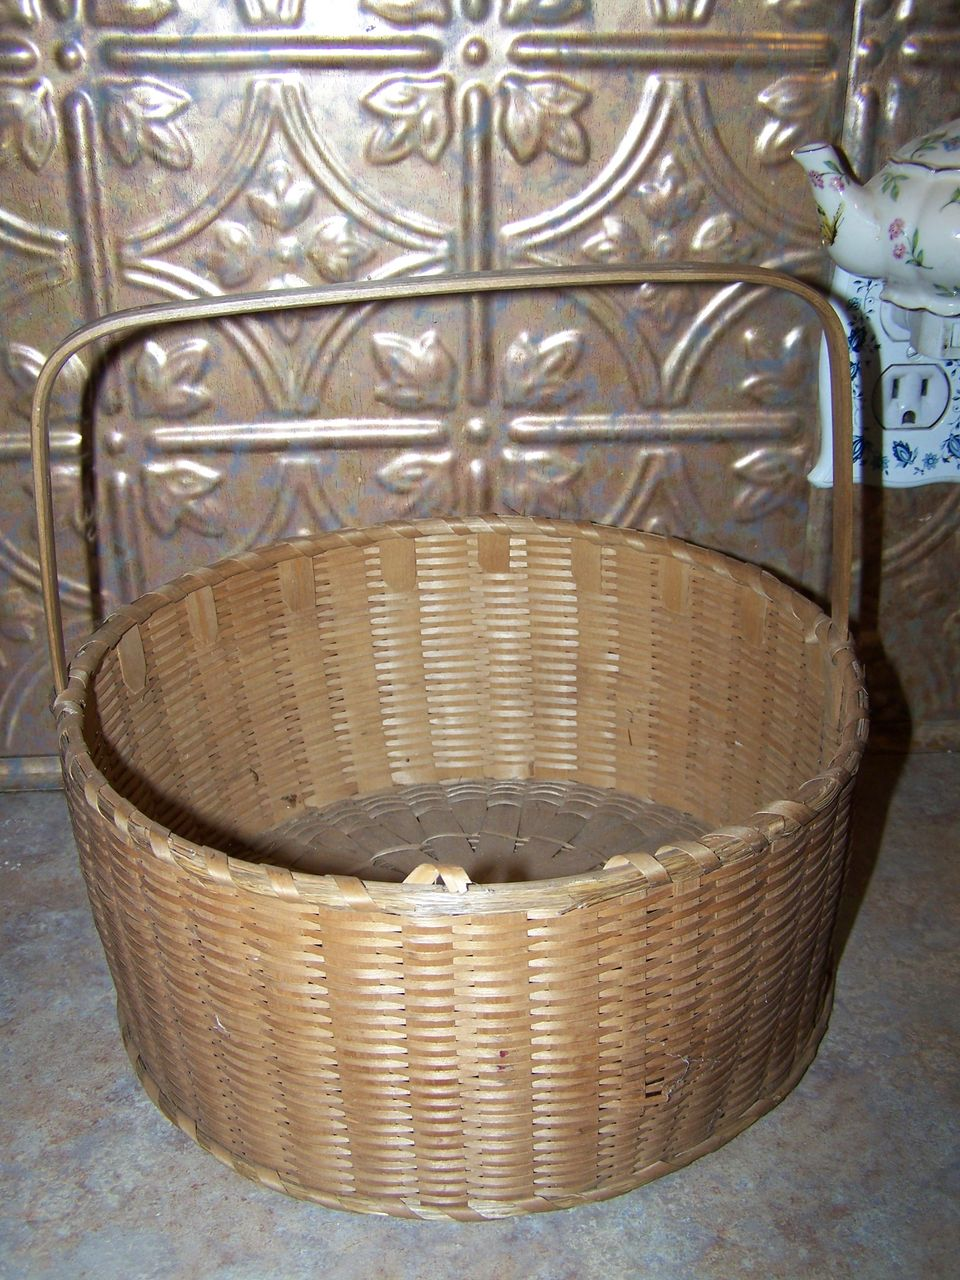 How To Weave A Sweetgrass Basket : Vintage hand woven sweet grass basket with original handle